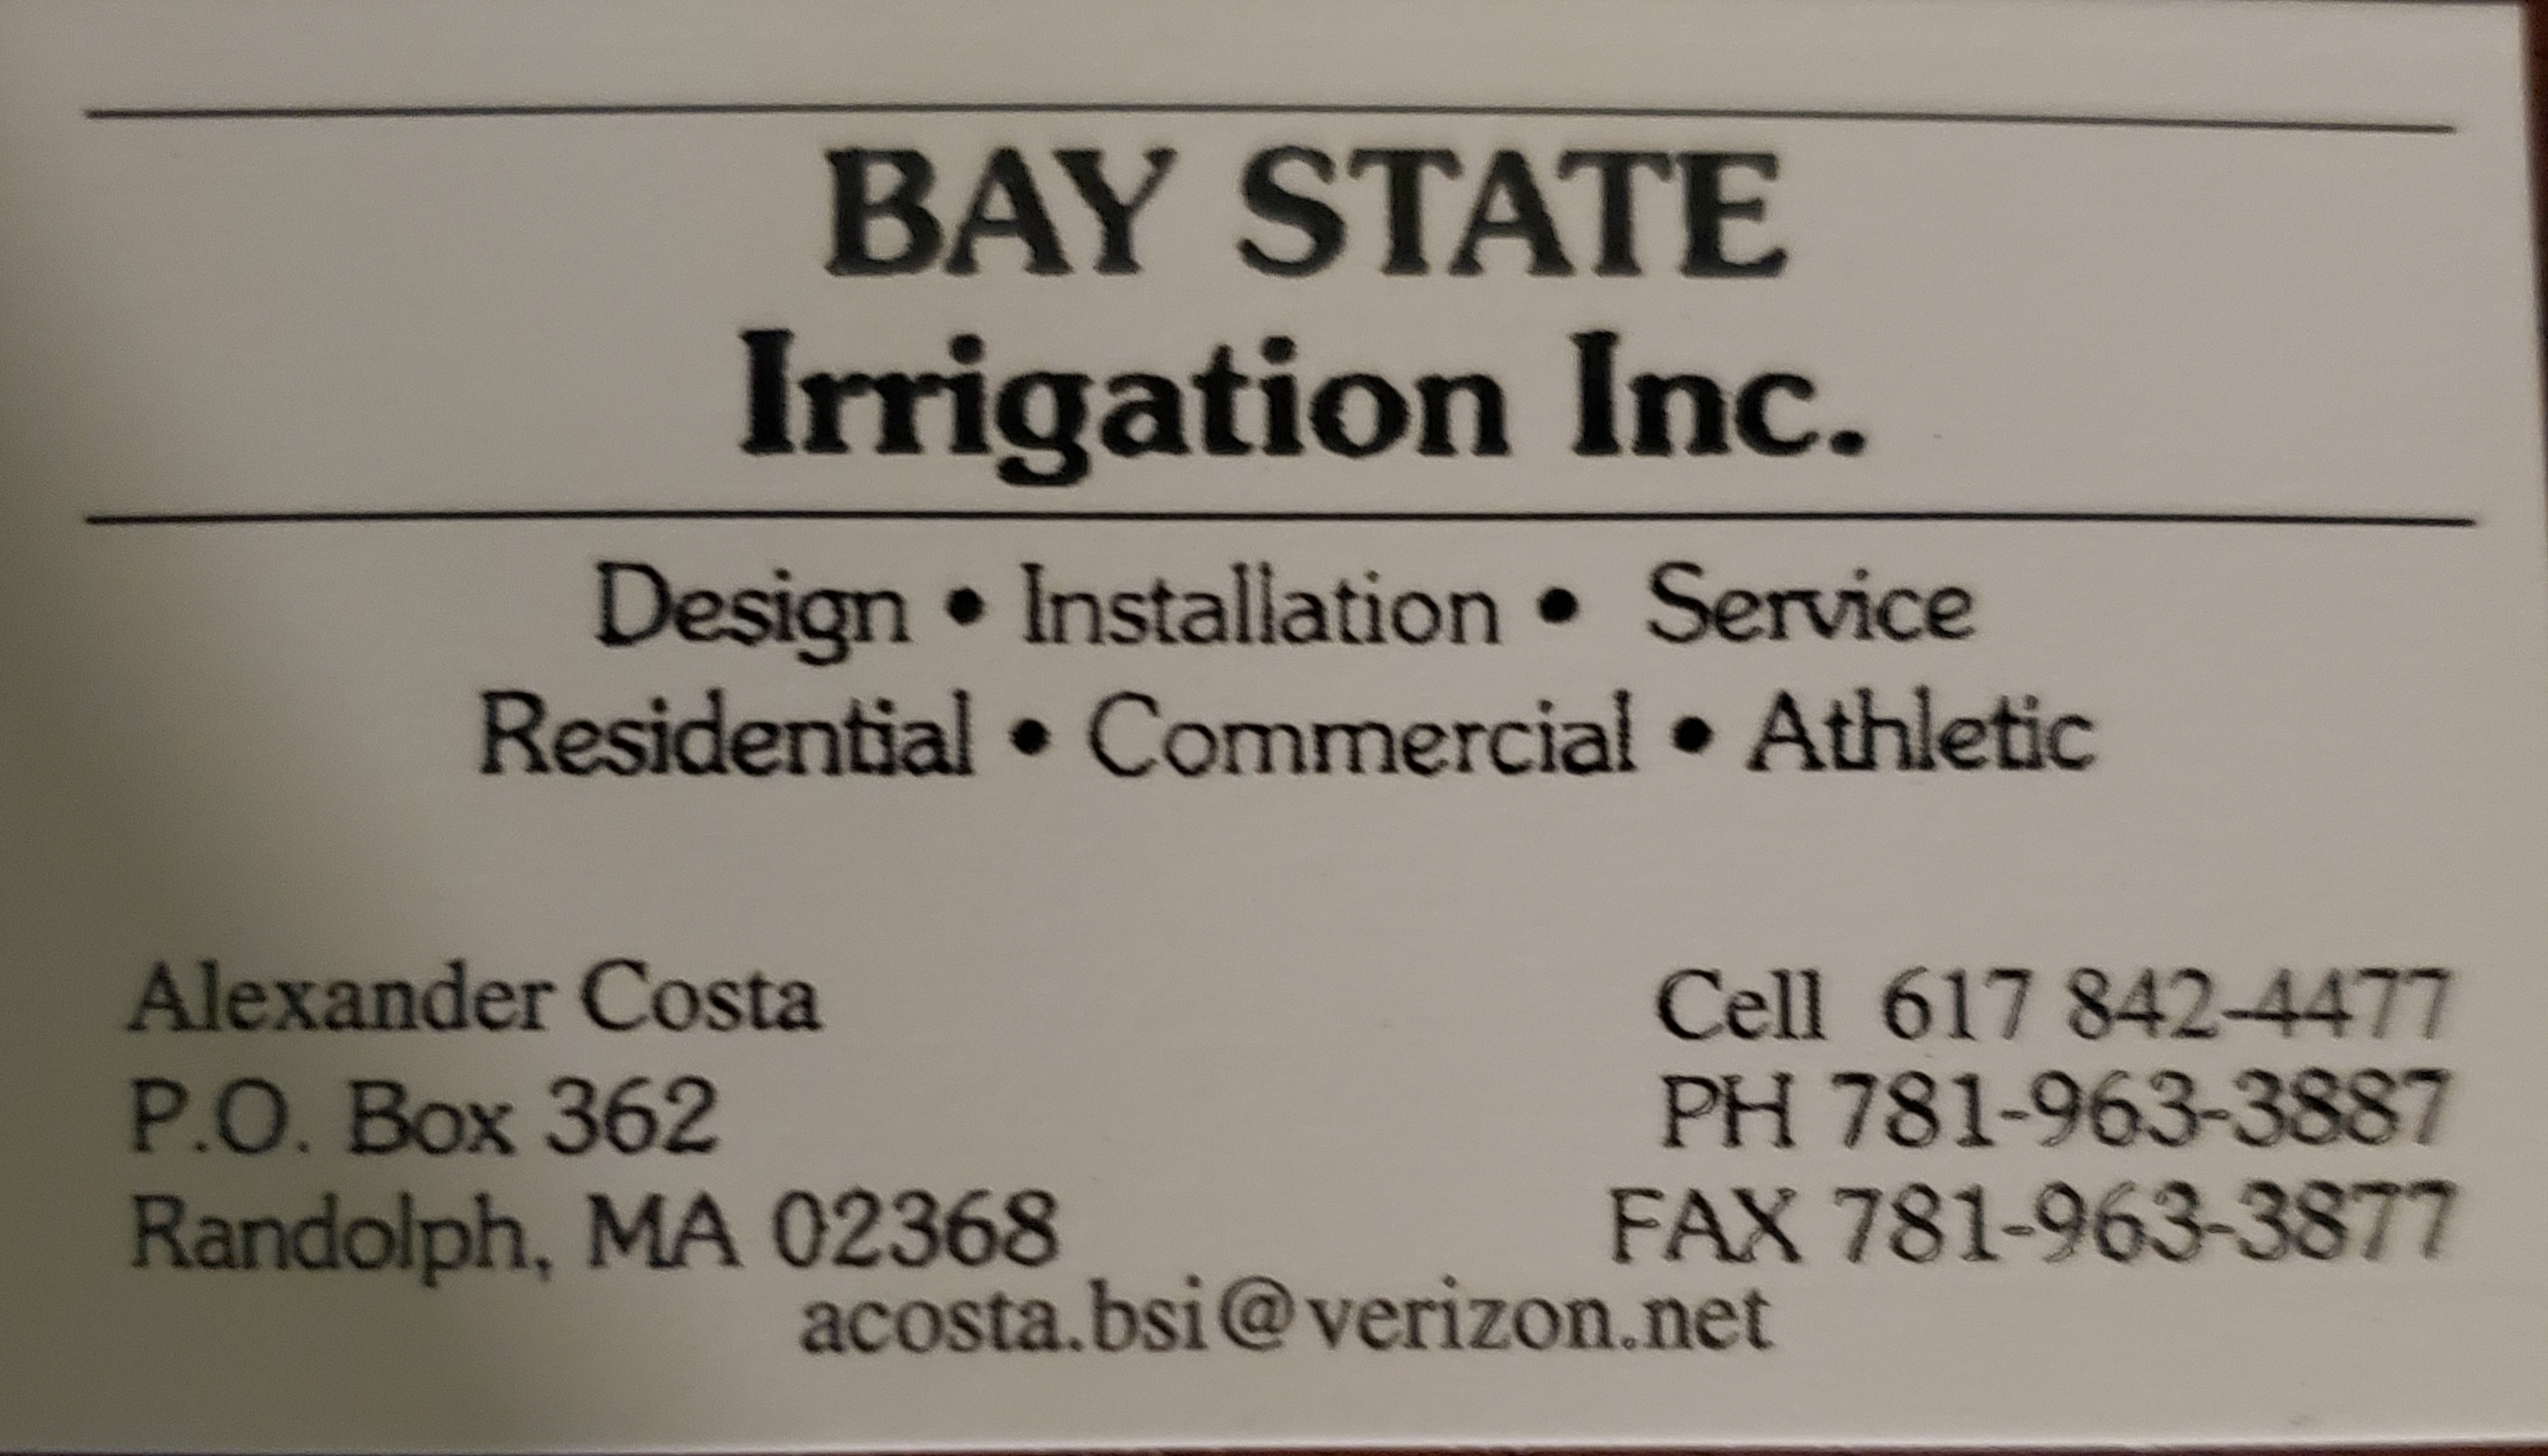 Bay State Irrigation Inc.